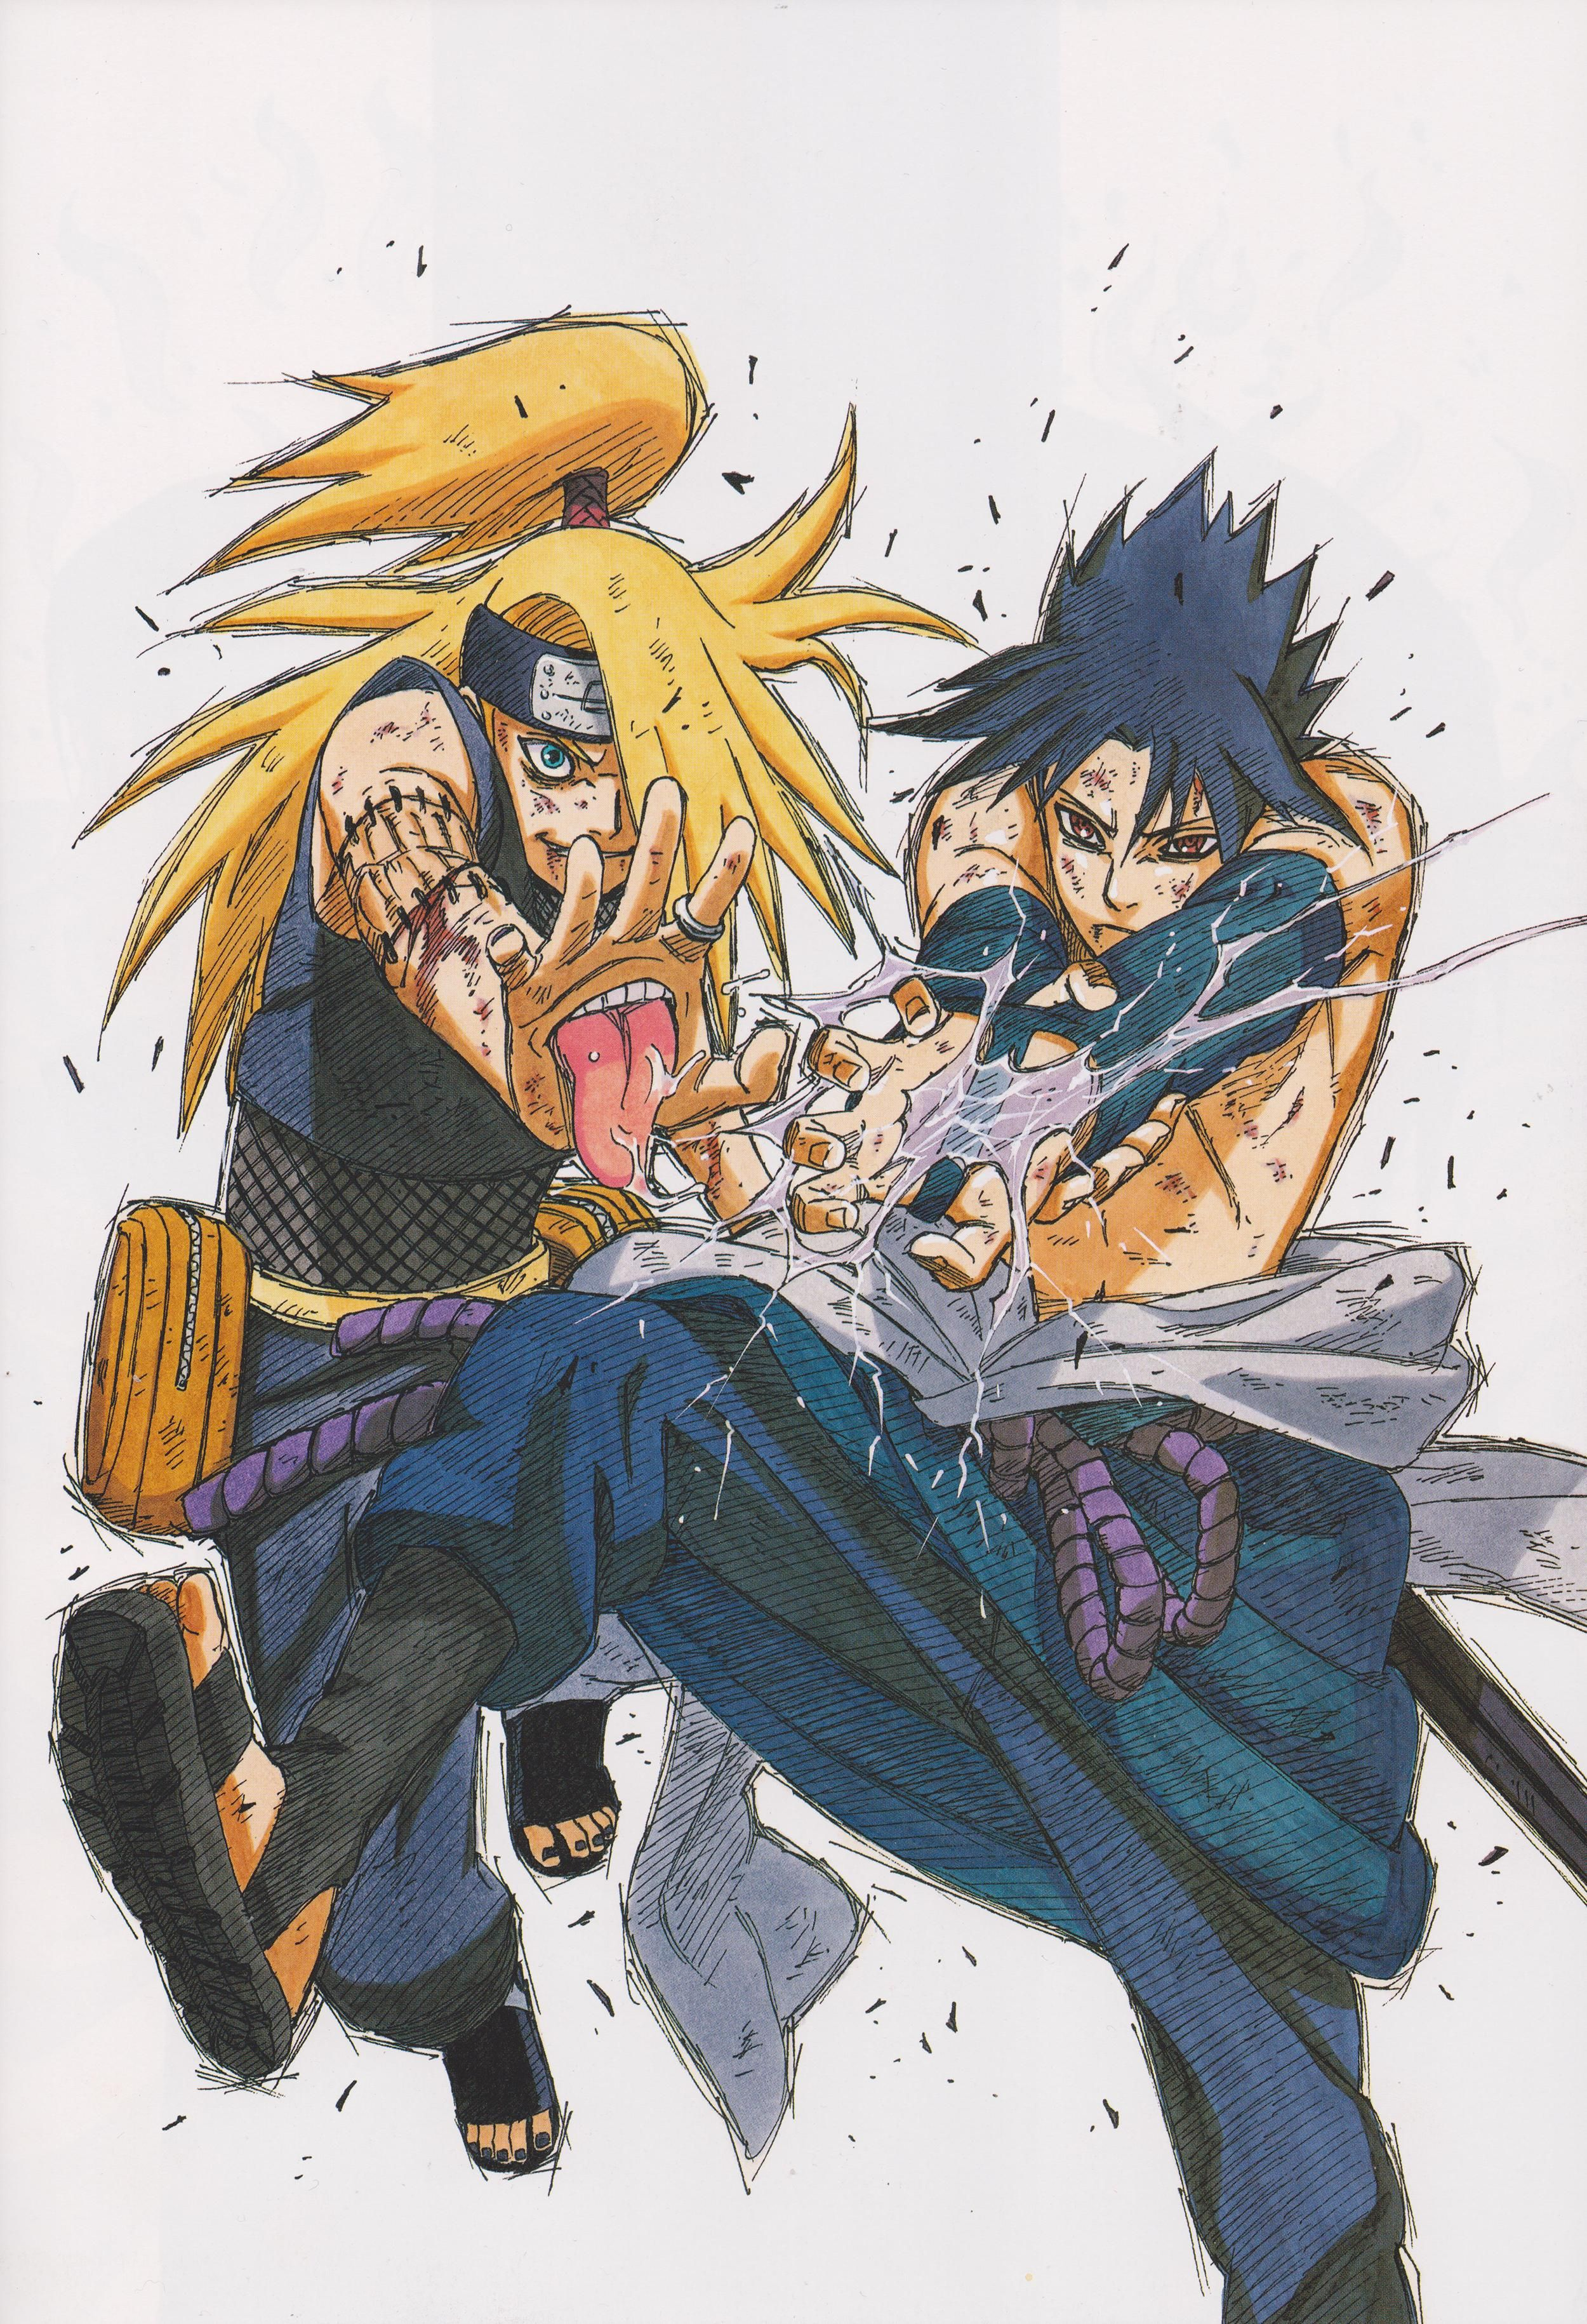 I Love the artist (Masashi Kishimoto) the creator of this Manga. his visual style and skill with traditional mediums like ink and coloured markers is amazing.